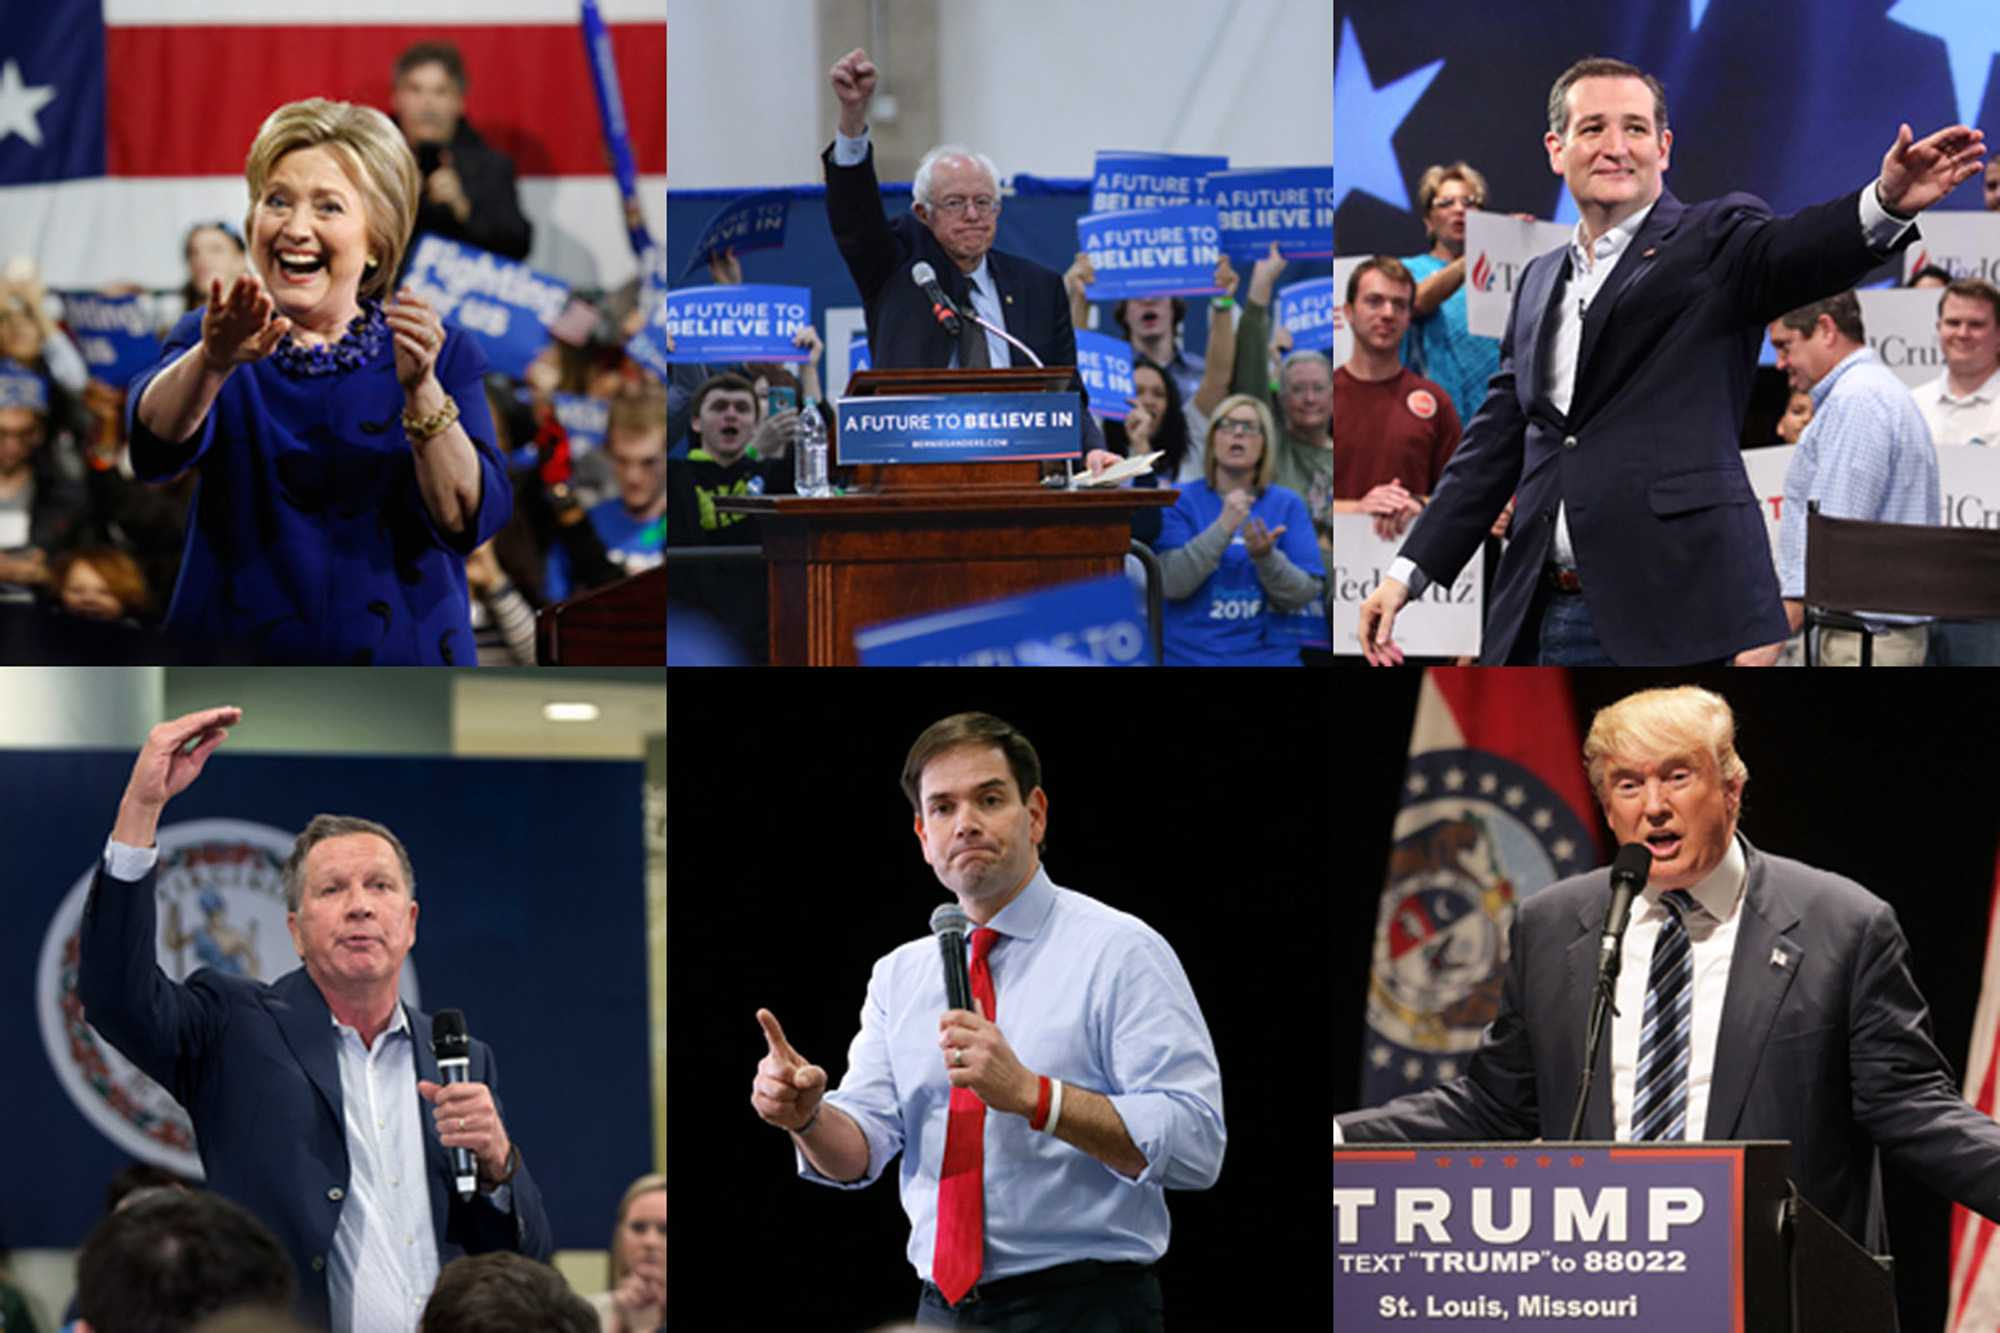 %3Cp%3ETuesday+is+the+Illinois+Primary.+Learn+more+about+where+each+candidate+stands+on+the+biggest+issues+facing+the+U.S.%3C%2Fp%3E